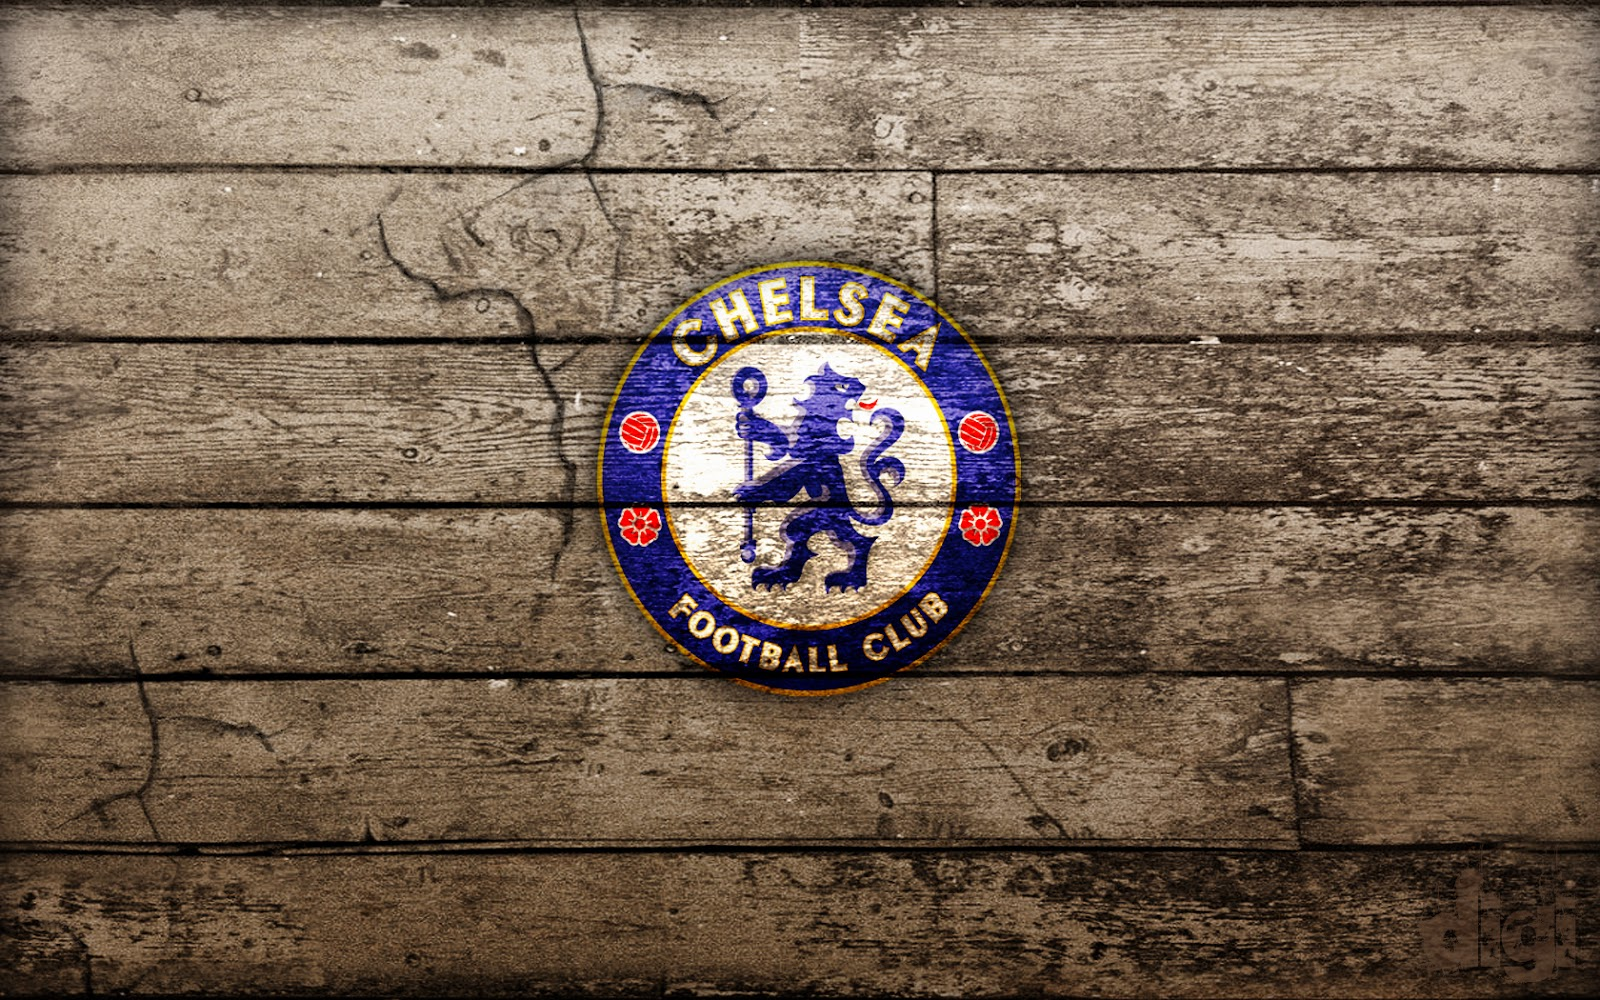 chelsea football club wallpaper football wallpaper hd pictures of dallas cowboys logo pictures of the dallas cowboys symbol